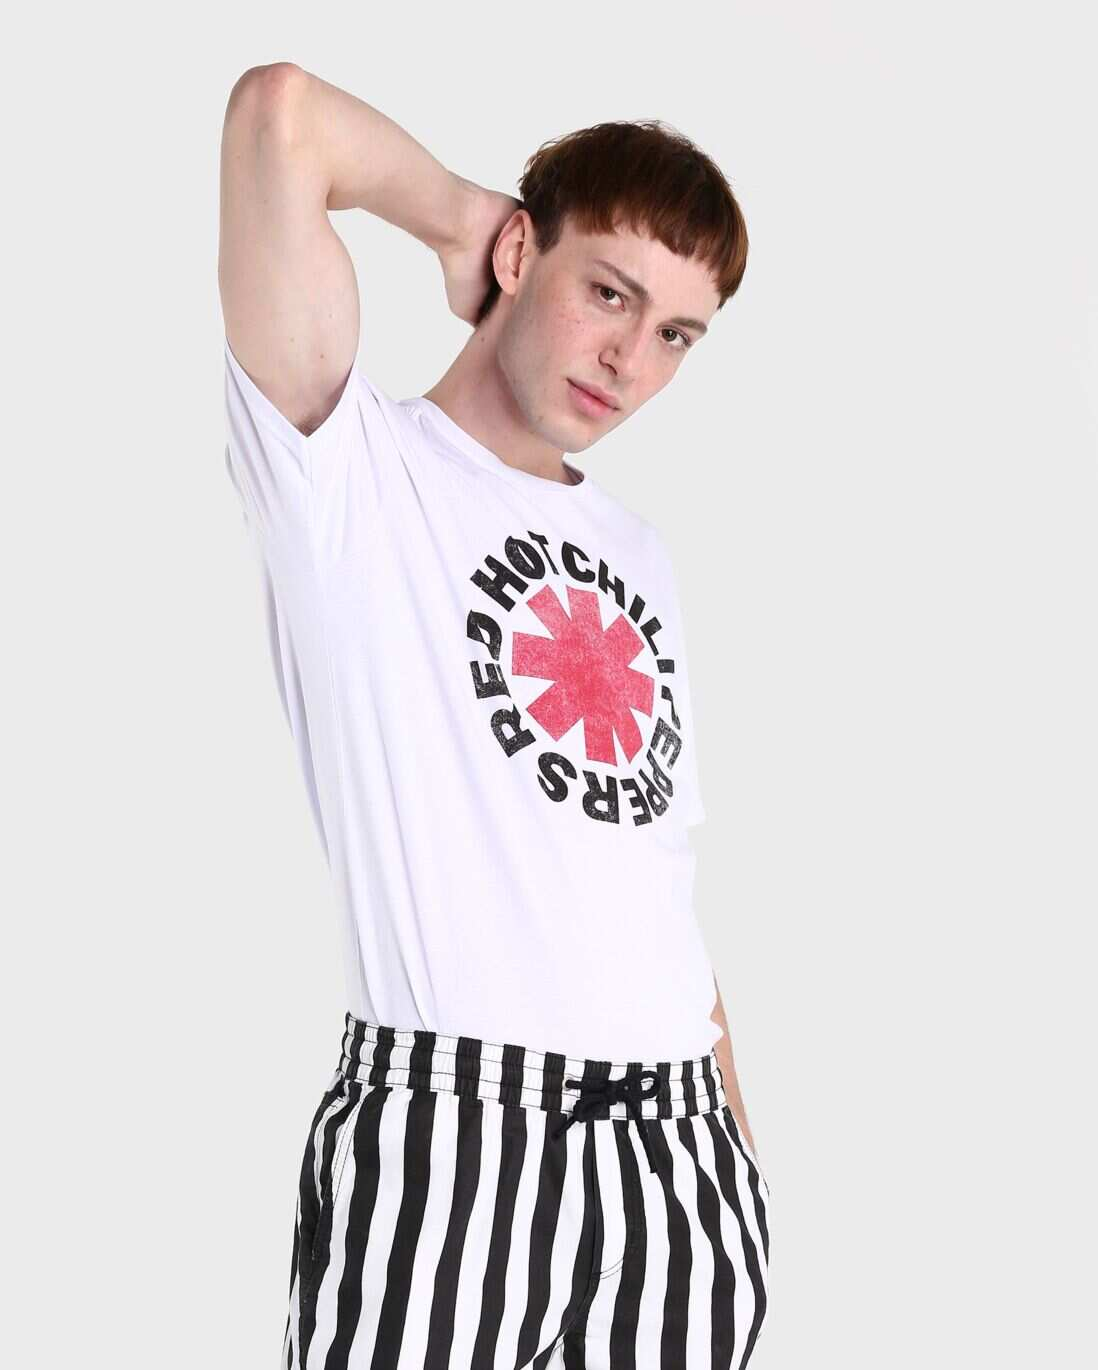 Camiseta Red Hot Chili Peppers - Branco